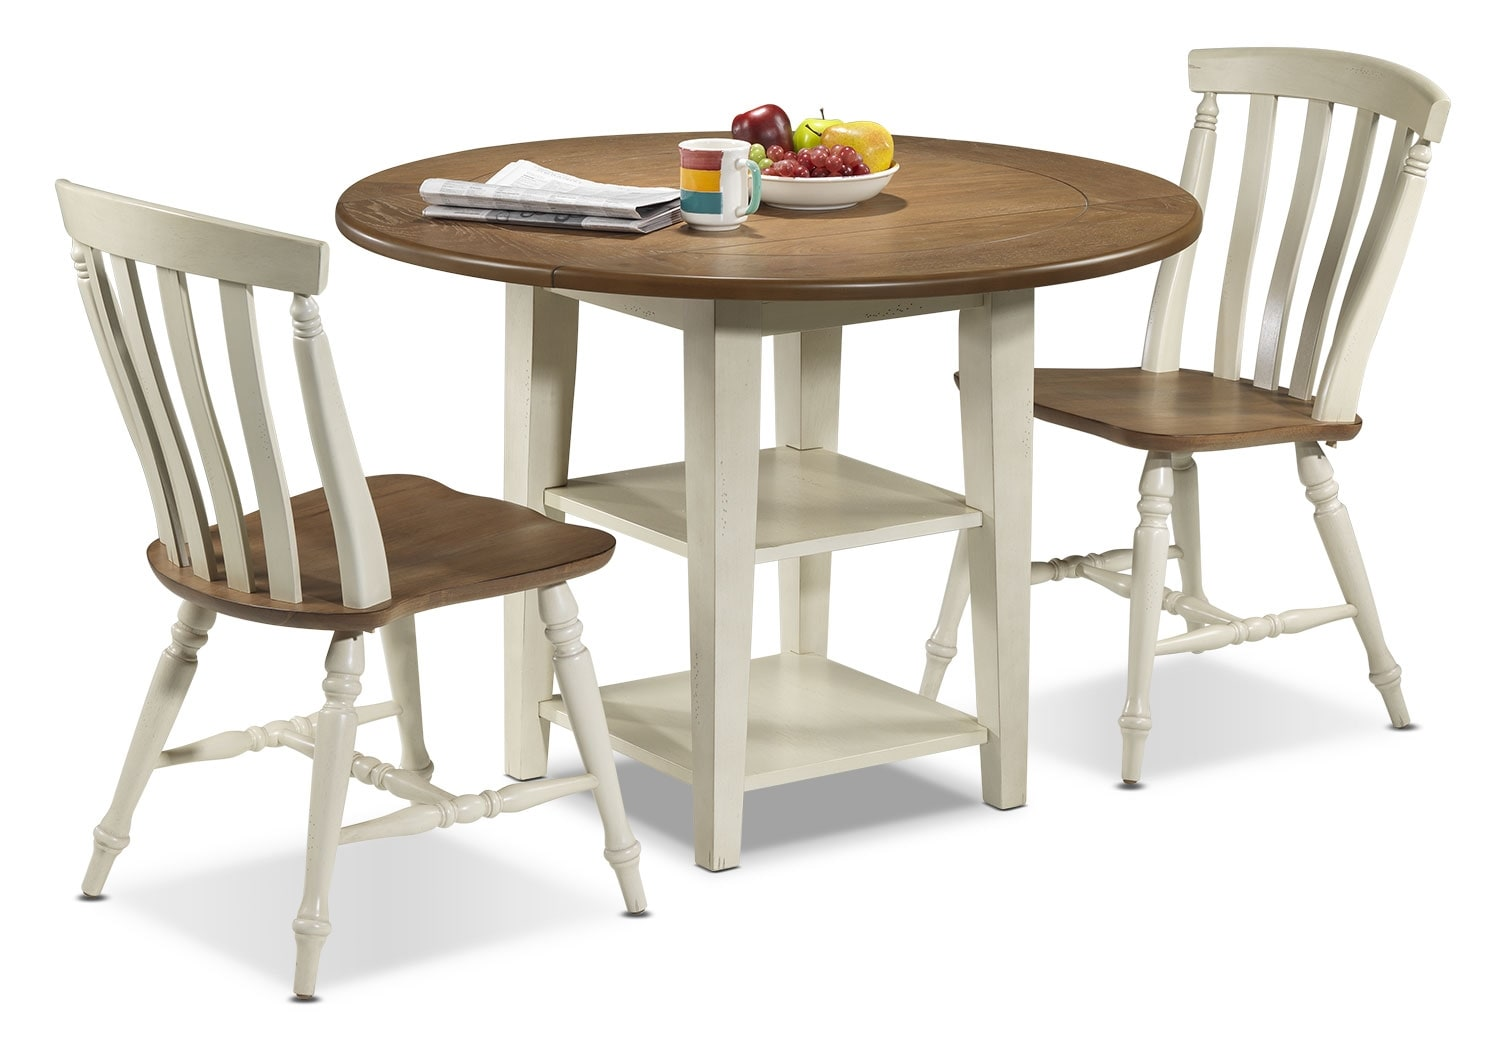 Casual Dining Room Furniture - Fresco 3-Piece Dinette Set - Driftwood, Cream